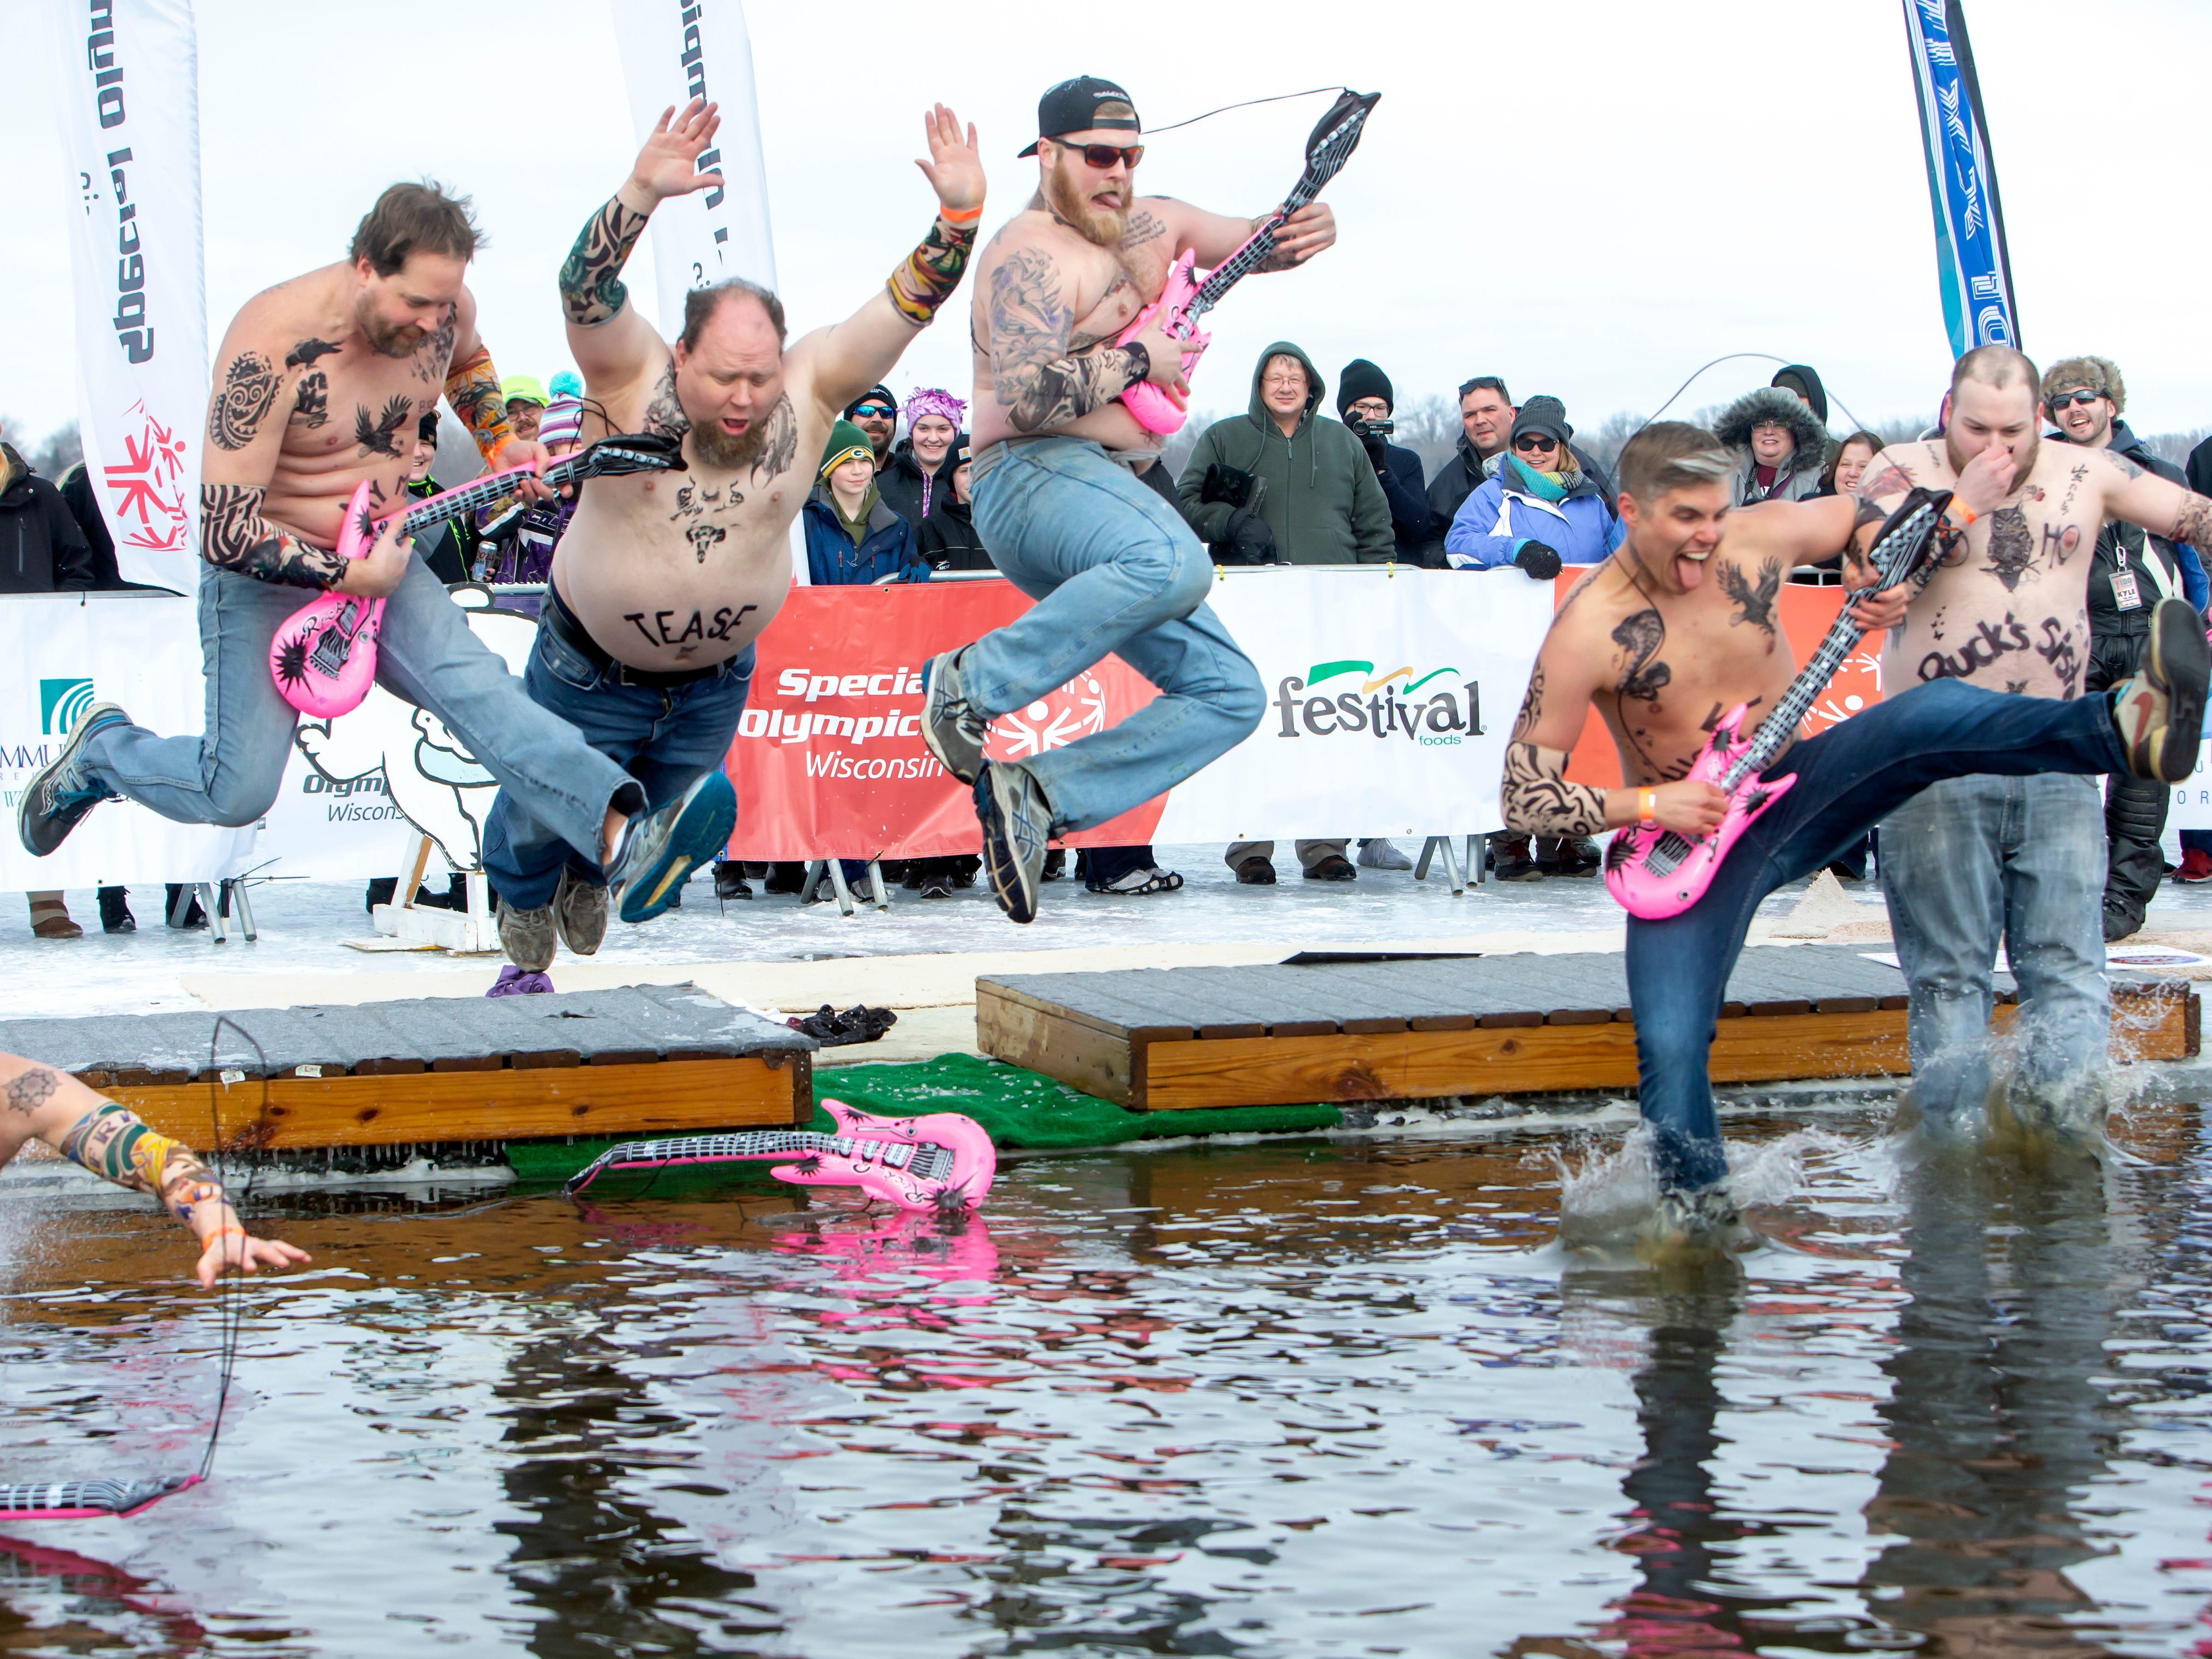 Pete's Garage gang dressed as rock stars take the plunge during the Special Olympics Wisconsin Polar Plunge in Oshkosh, Wis., on Saturday, February 16, 2019, at Miller's Bay in Menominee Park.